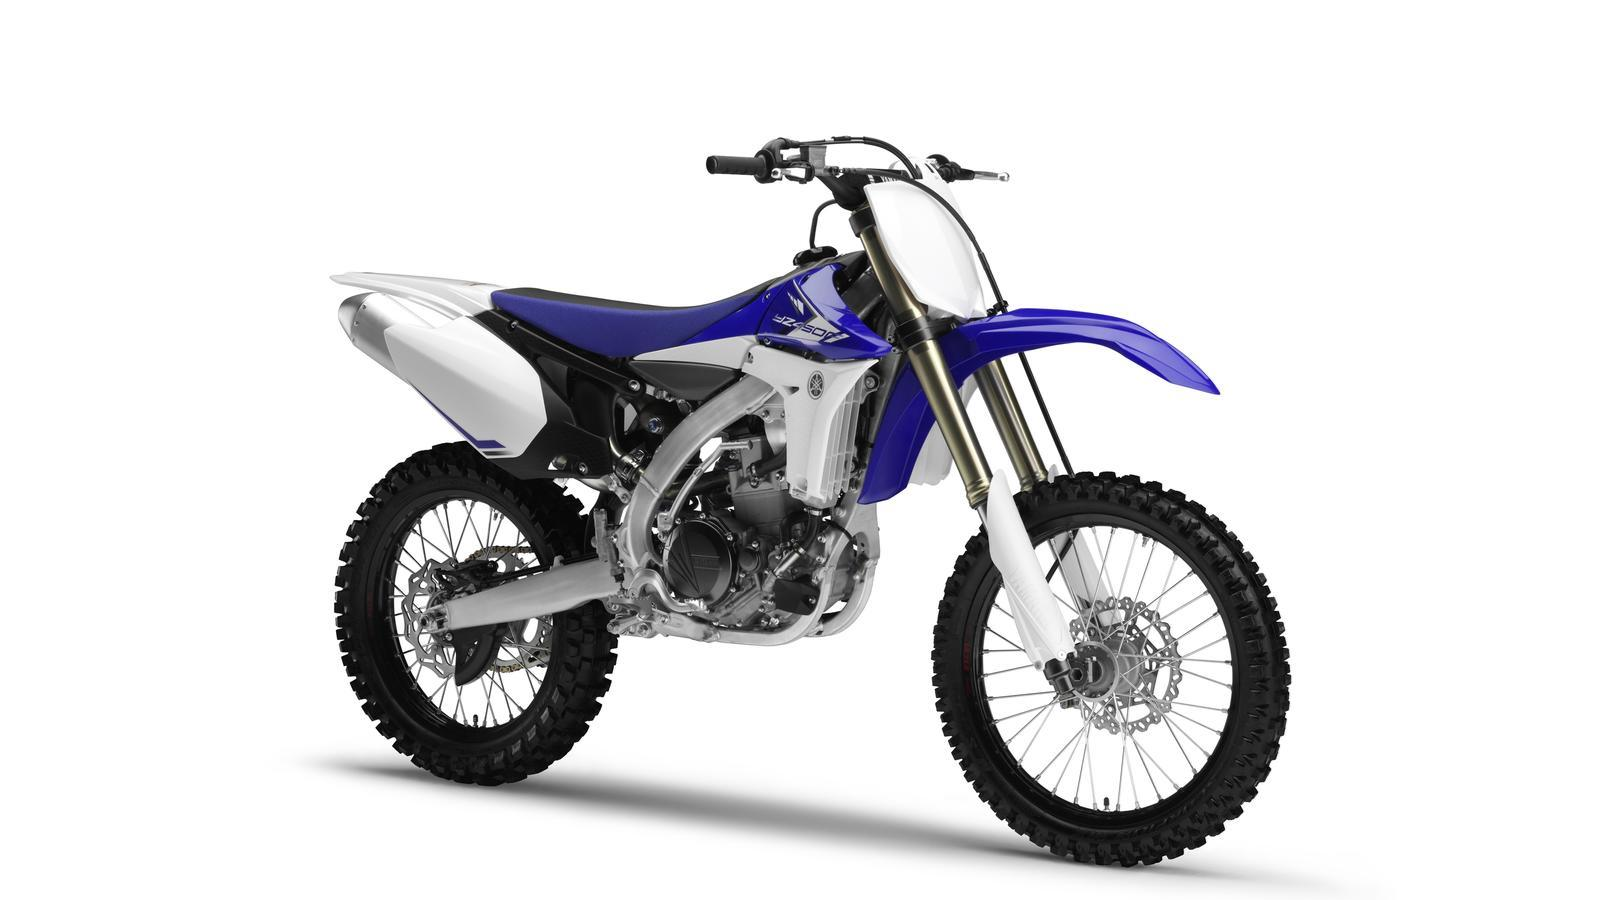 2009 yamaha yz 450f pics specs and information for New yamaha 450